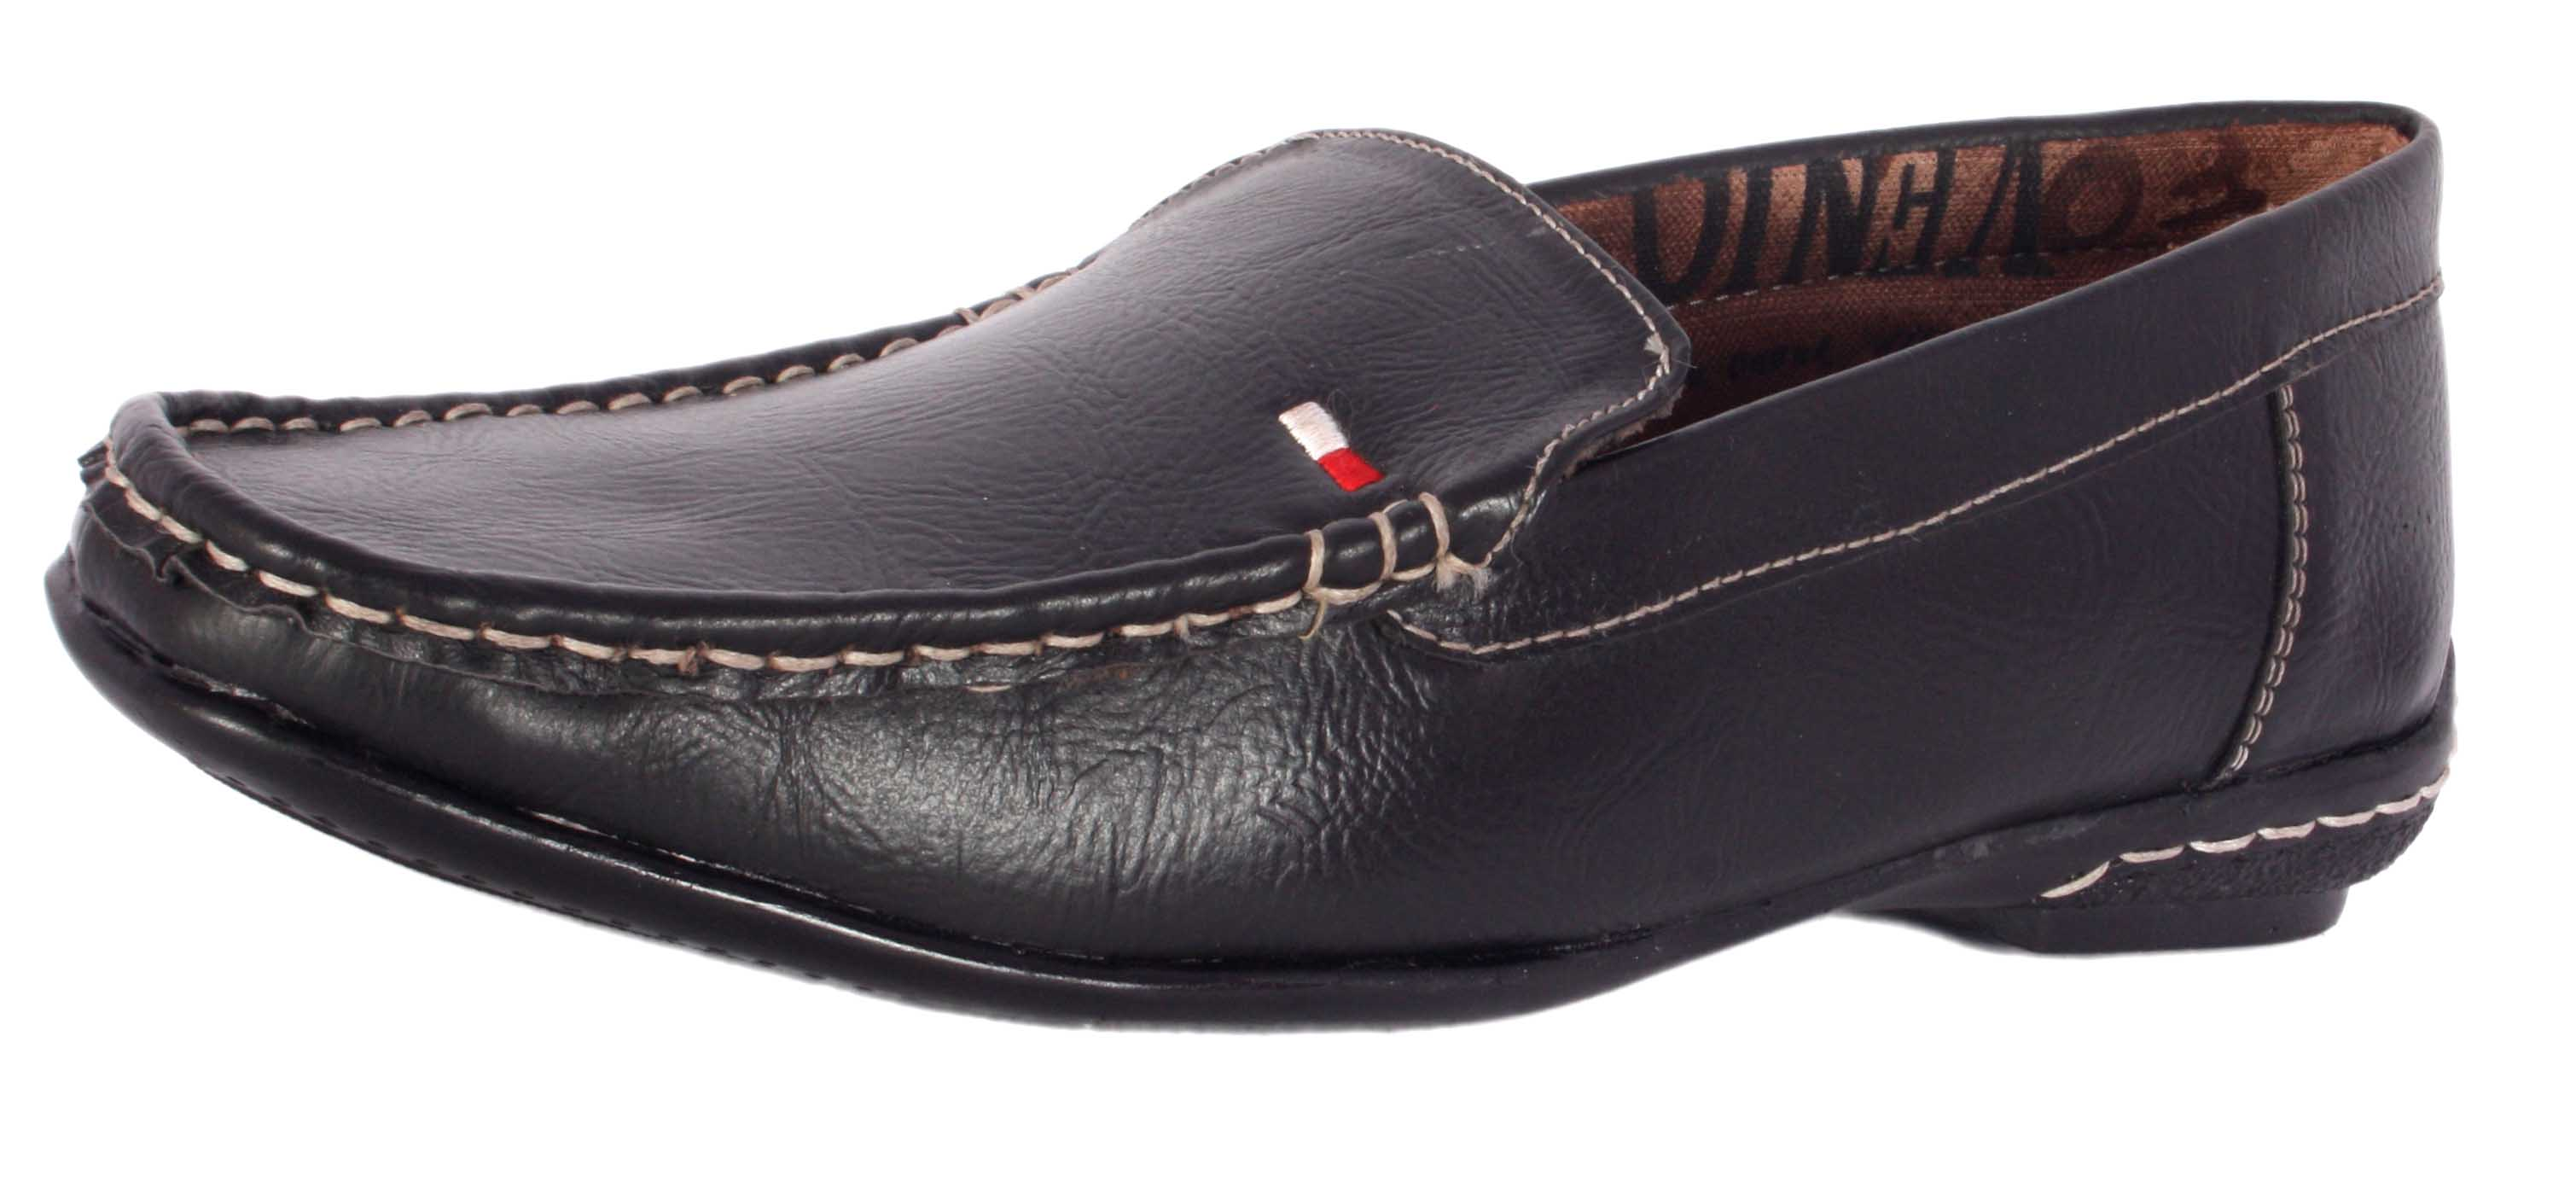 Shoeniverse Black color designer loafers